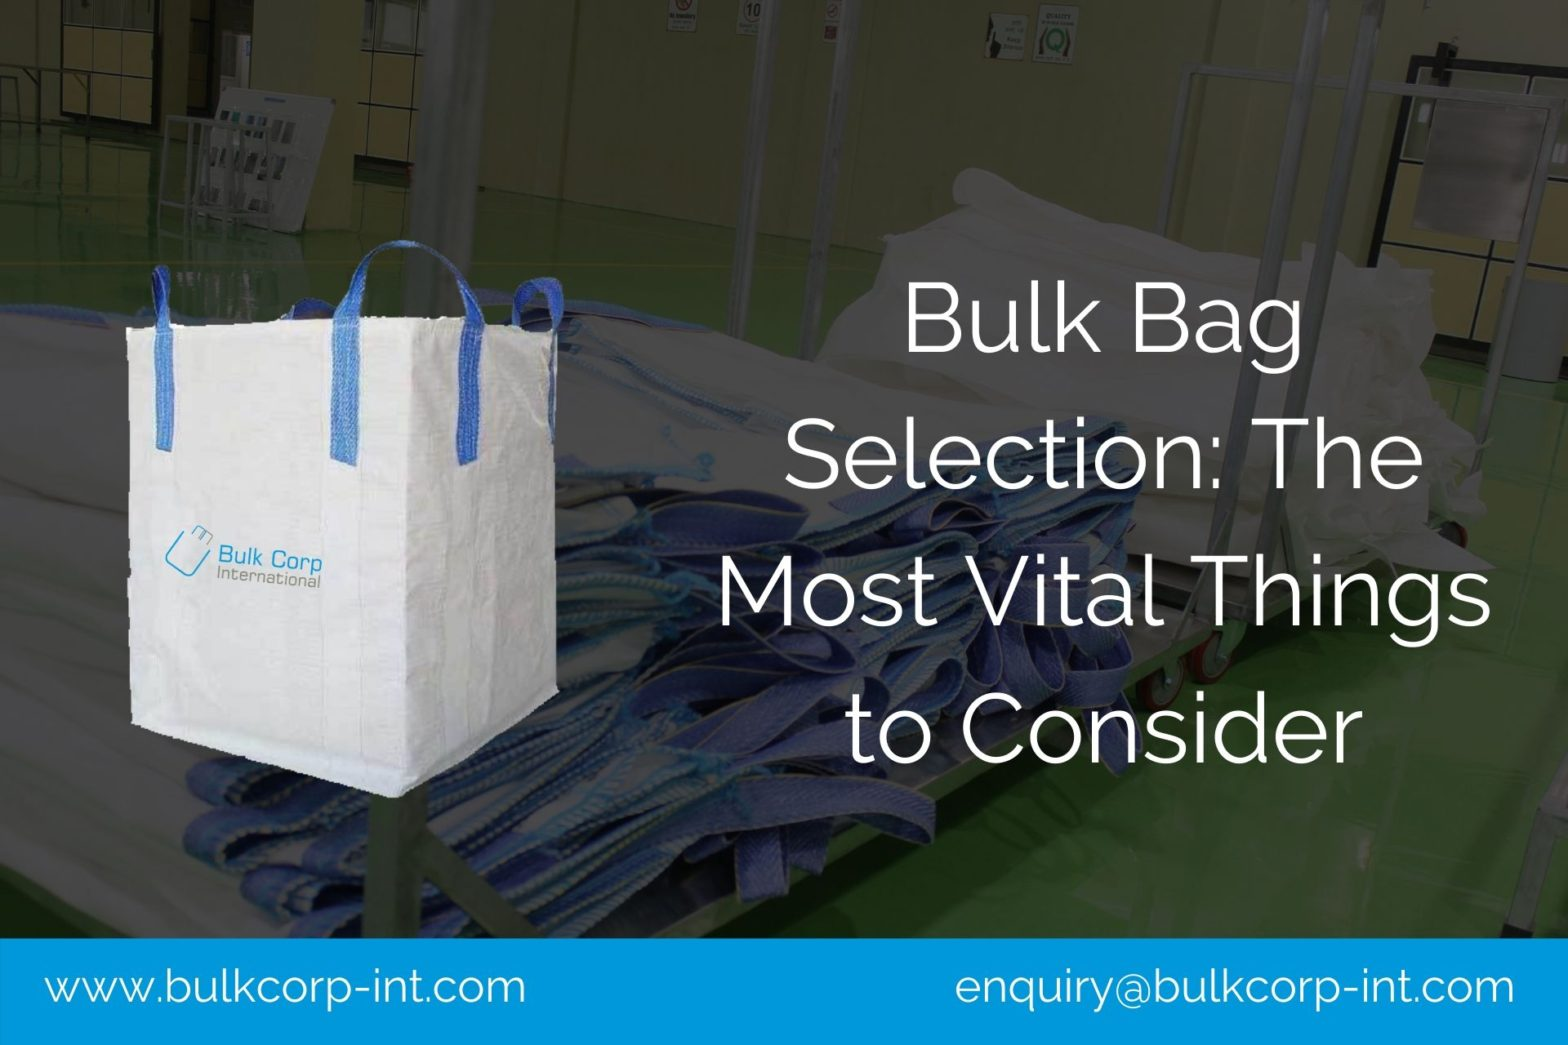 Bulk Bag Selection: The Most Vital Things to Consider